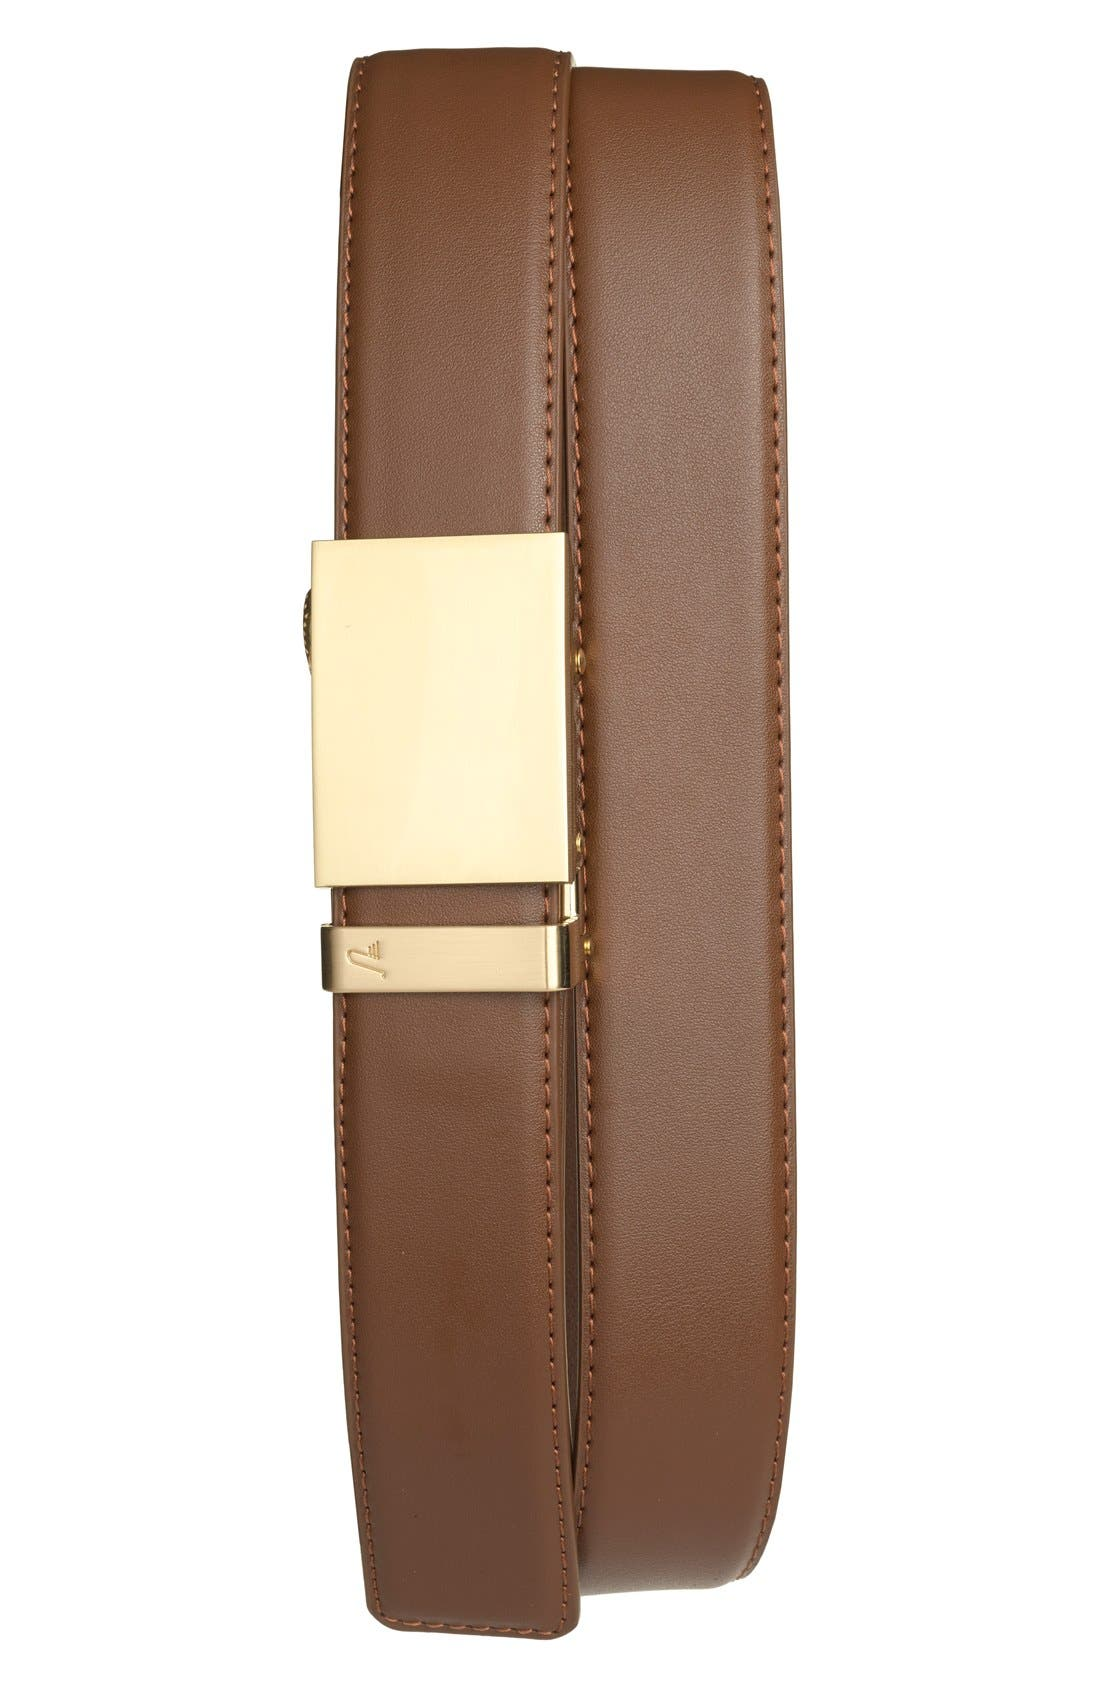 MISSION BELT 'Gold' Leather Belt